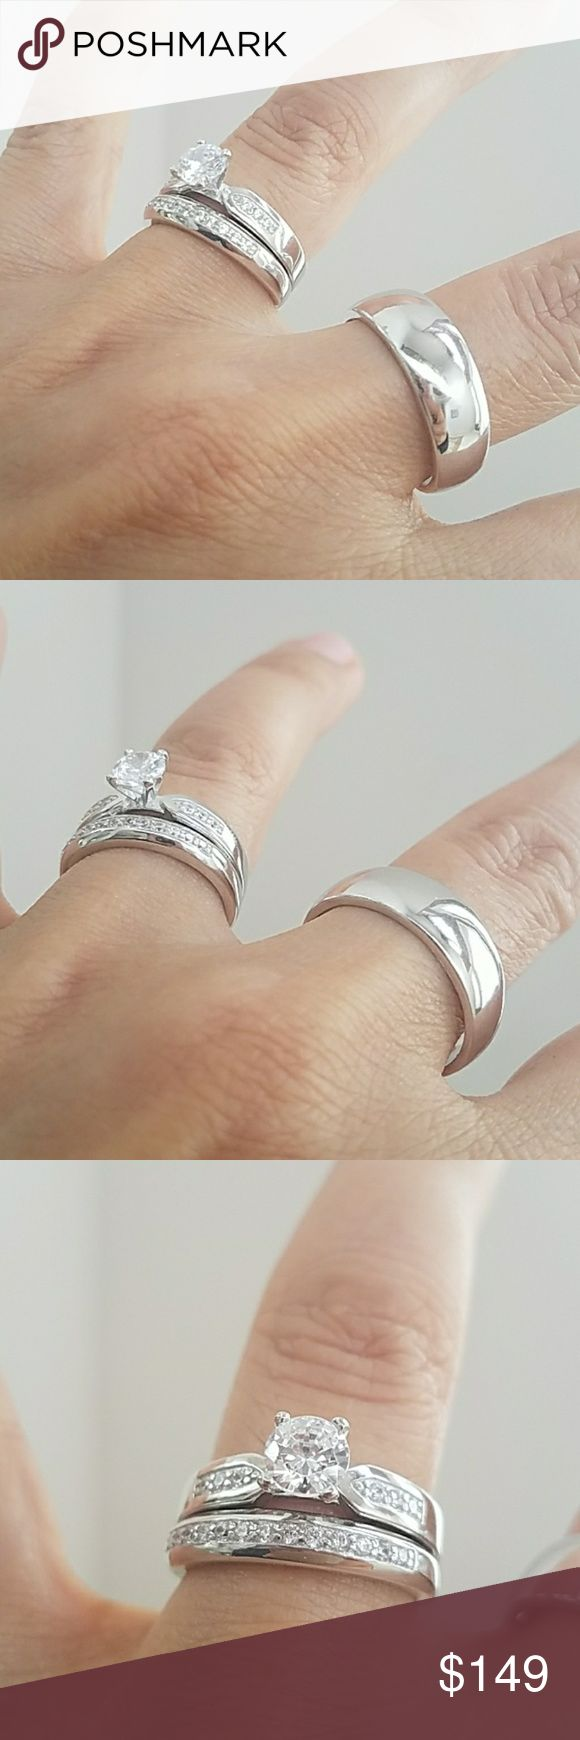 14k Gold plated Engagement Ring Plain Wedding Band 3pc set. Women's Engagement Ring with Wedding Band for Bride and Groom. 3pc set. 1/2 karat cubic zirconia center stone in a 14k White Gold plated over Sterling silver setting. Available in all sizes. Please message me your ring size your Ring sizes. Thanks Jewelry Rings